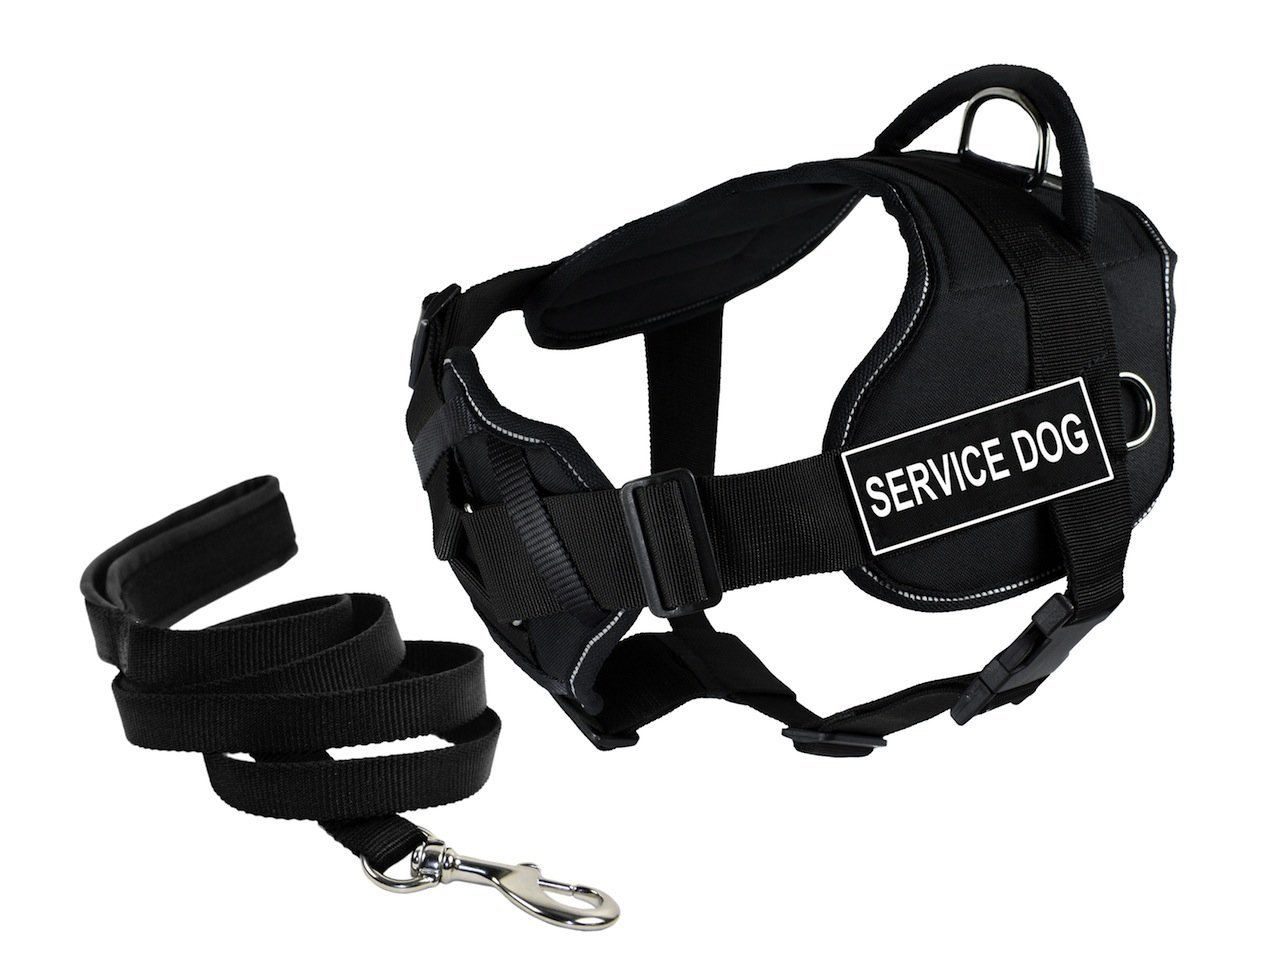 Dean & Tyler's DT Fun Chest Support ''SERVICE DOG'' Harness with Reflective Trim, Large, and 6 ft Padded Puppy Leash.